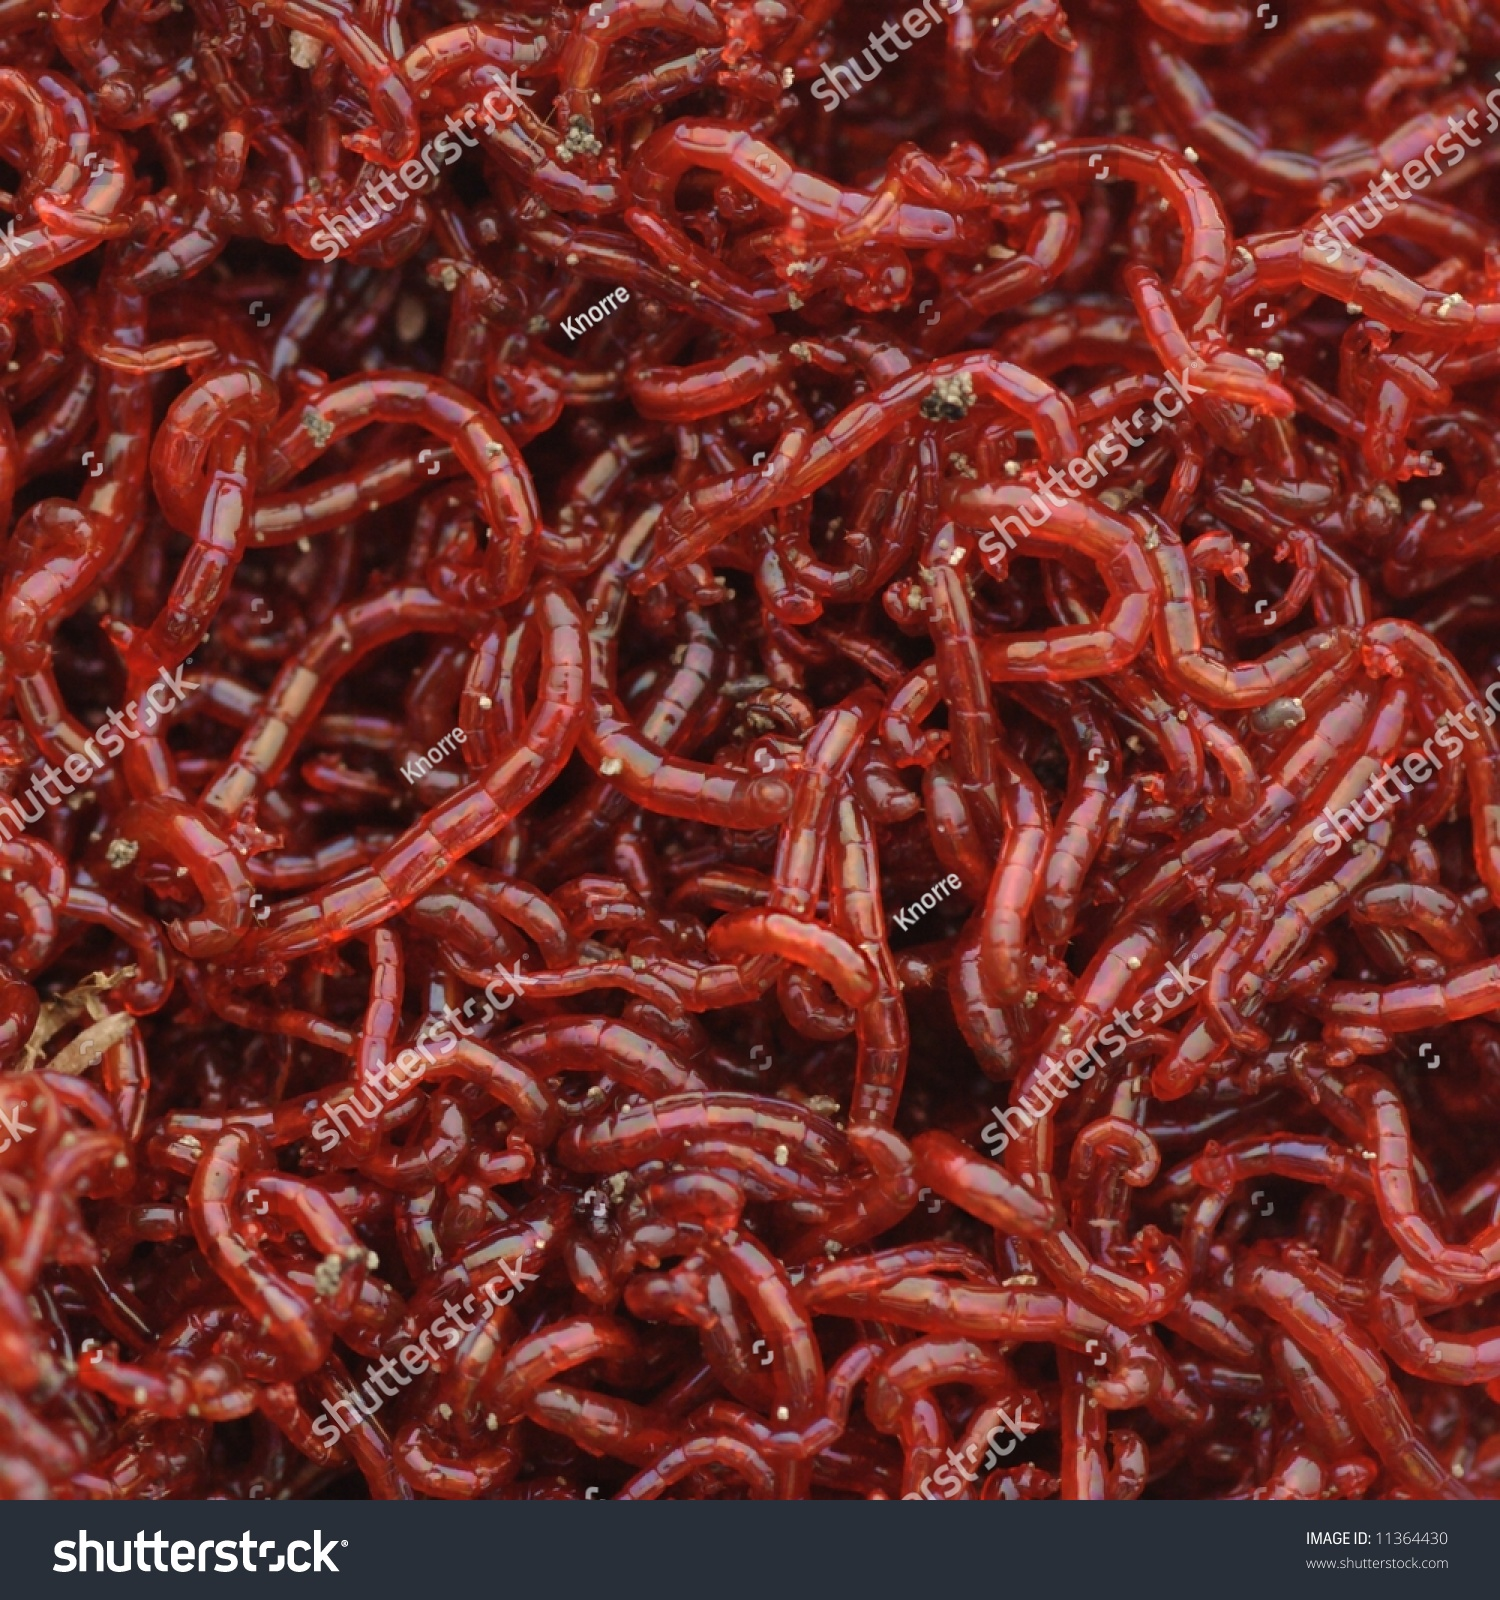 Bloodworms midge larvae common life food stock photo for Bloodworms fish food